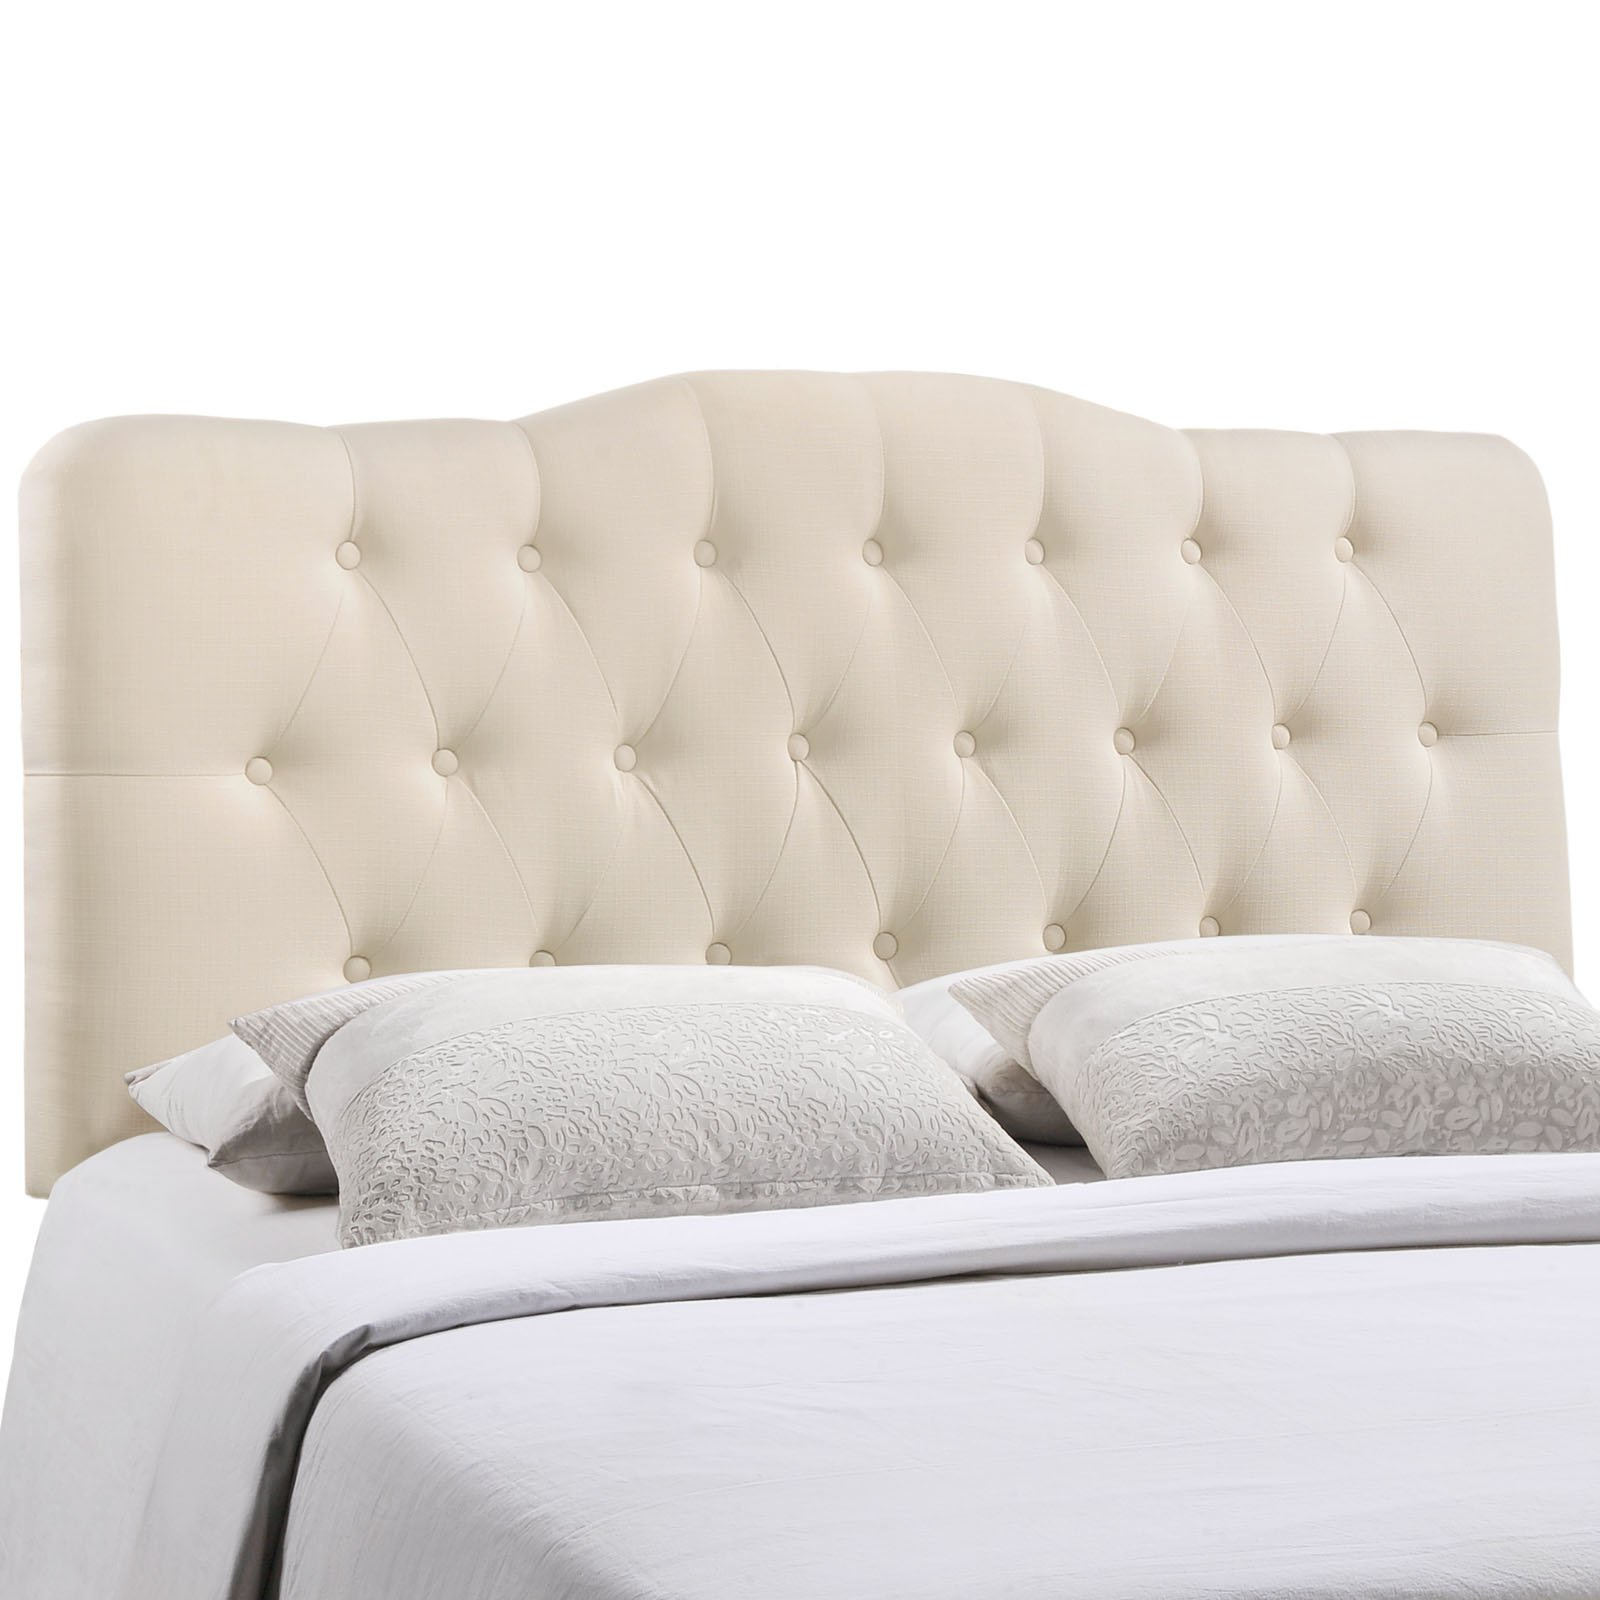 Modway Annabel Tufted Button Linen Fabric Upholstered Queen Headboard in Ivory